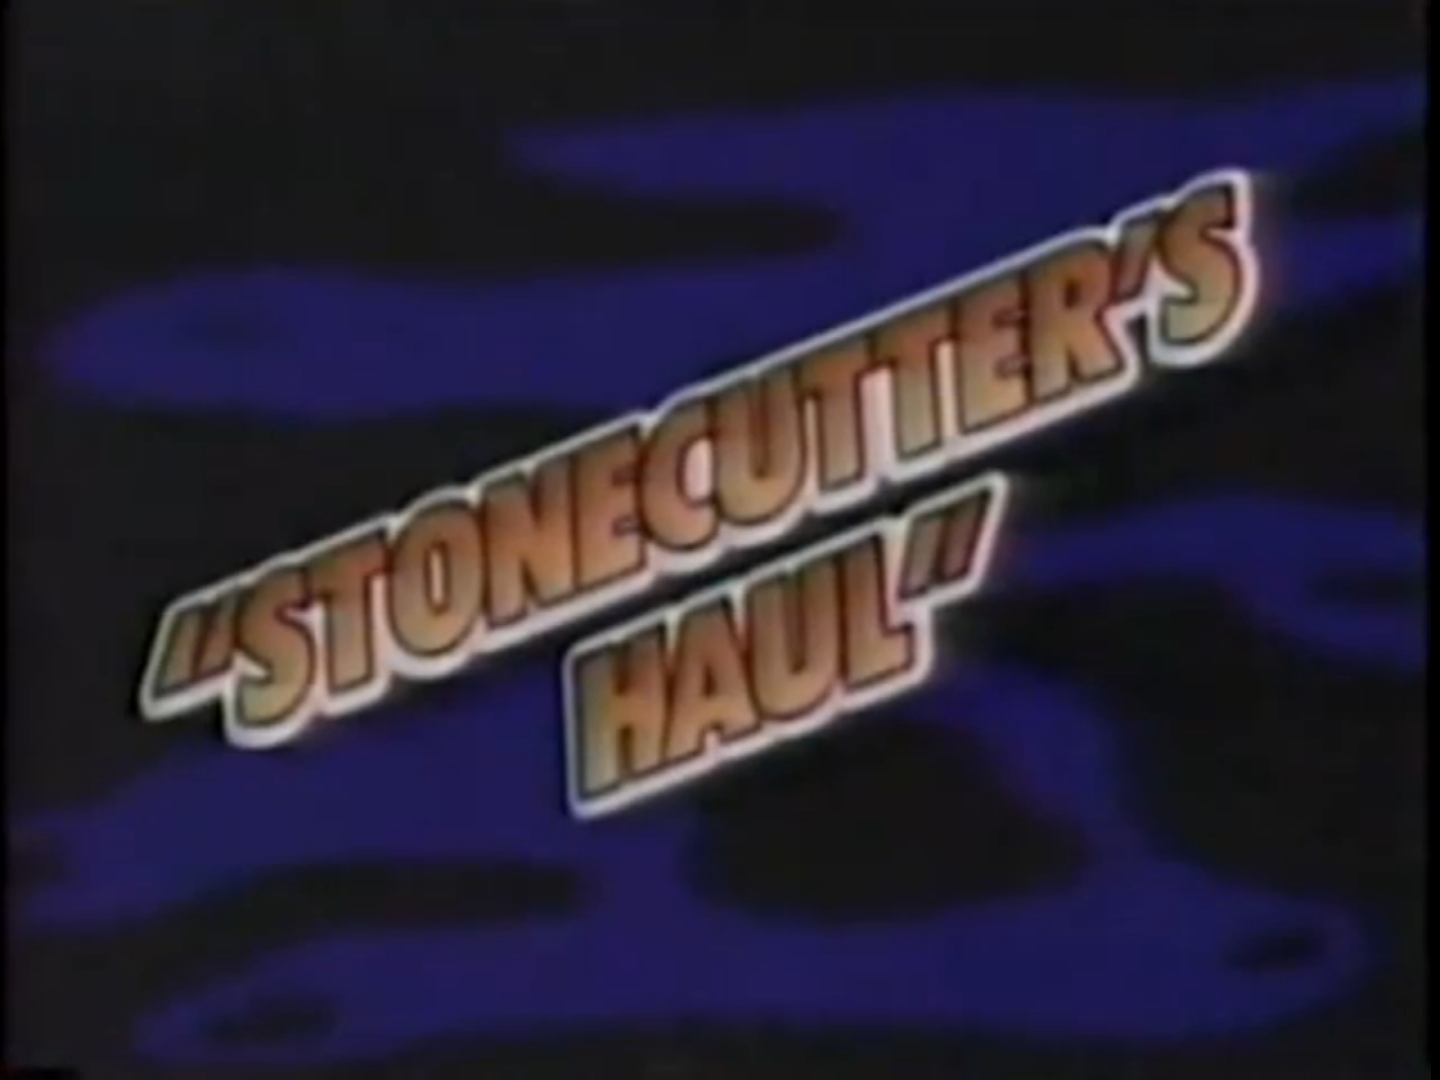 Stonecutter's Haul